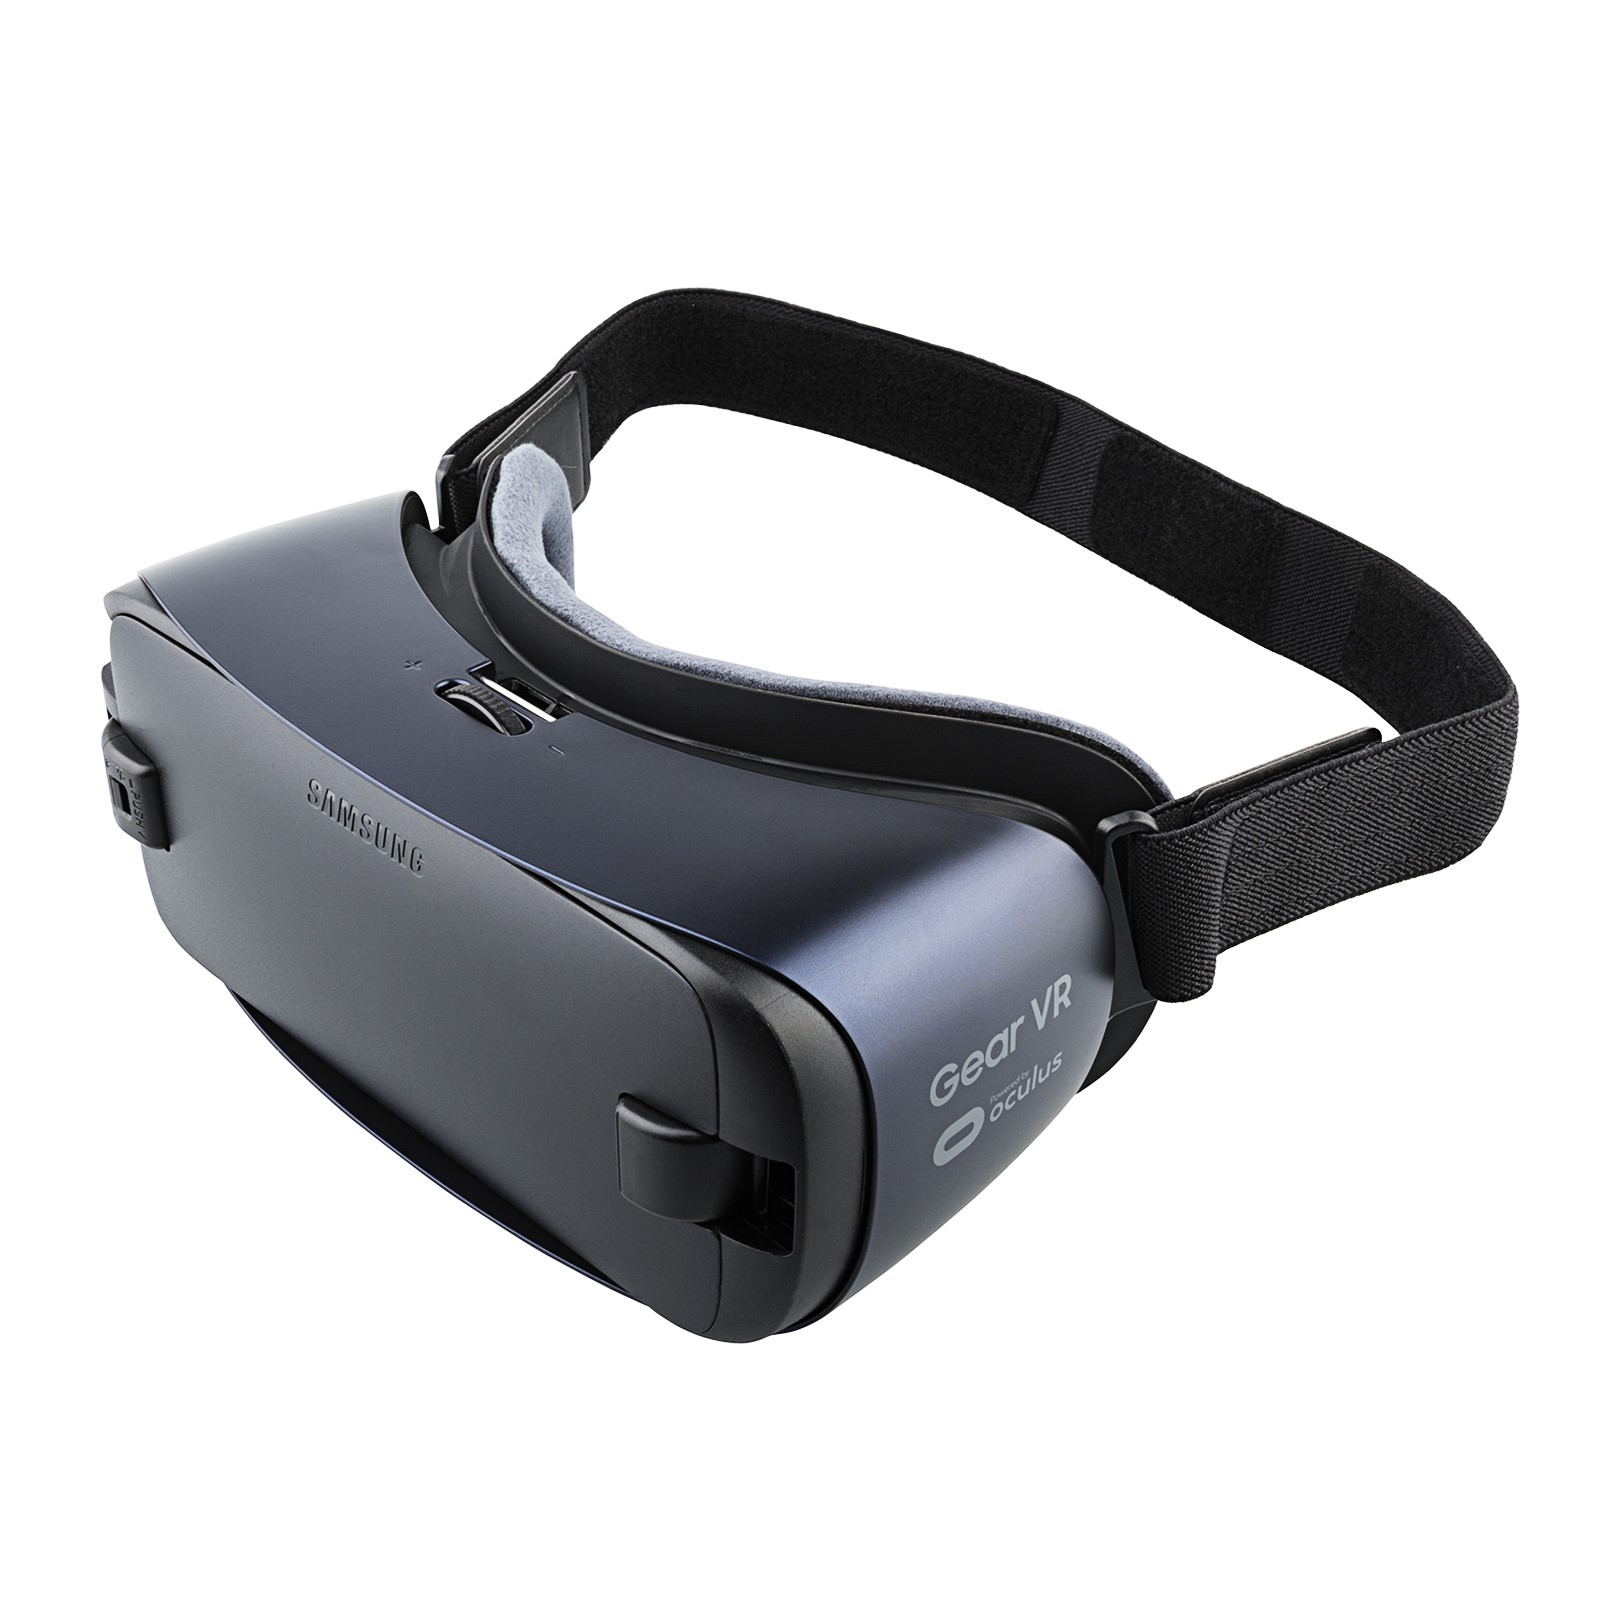 Samsung Gear VR Virtual Reality Headset SAM-GEARVR2-A1